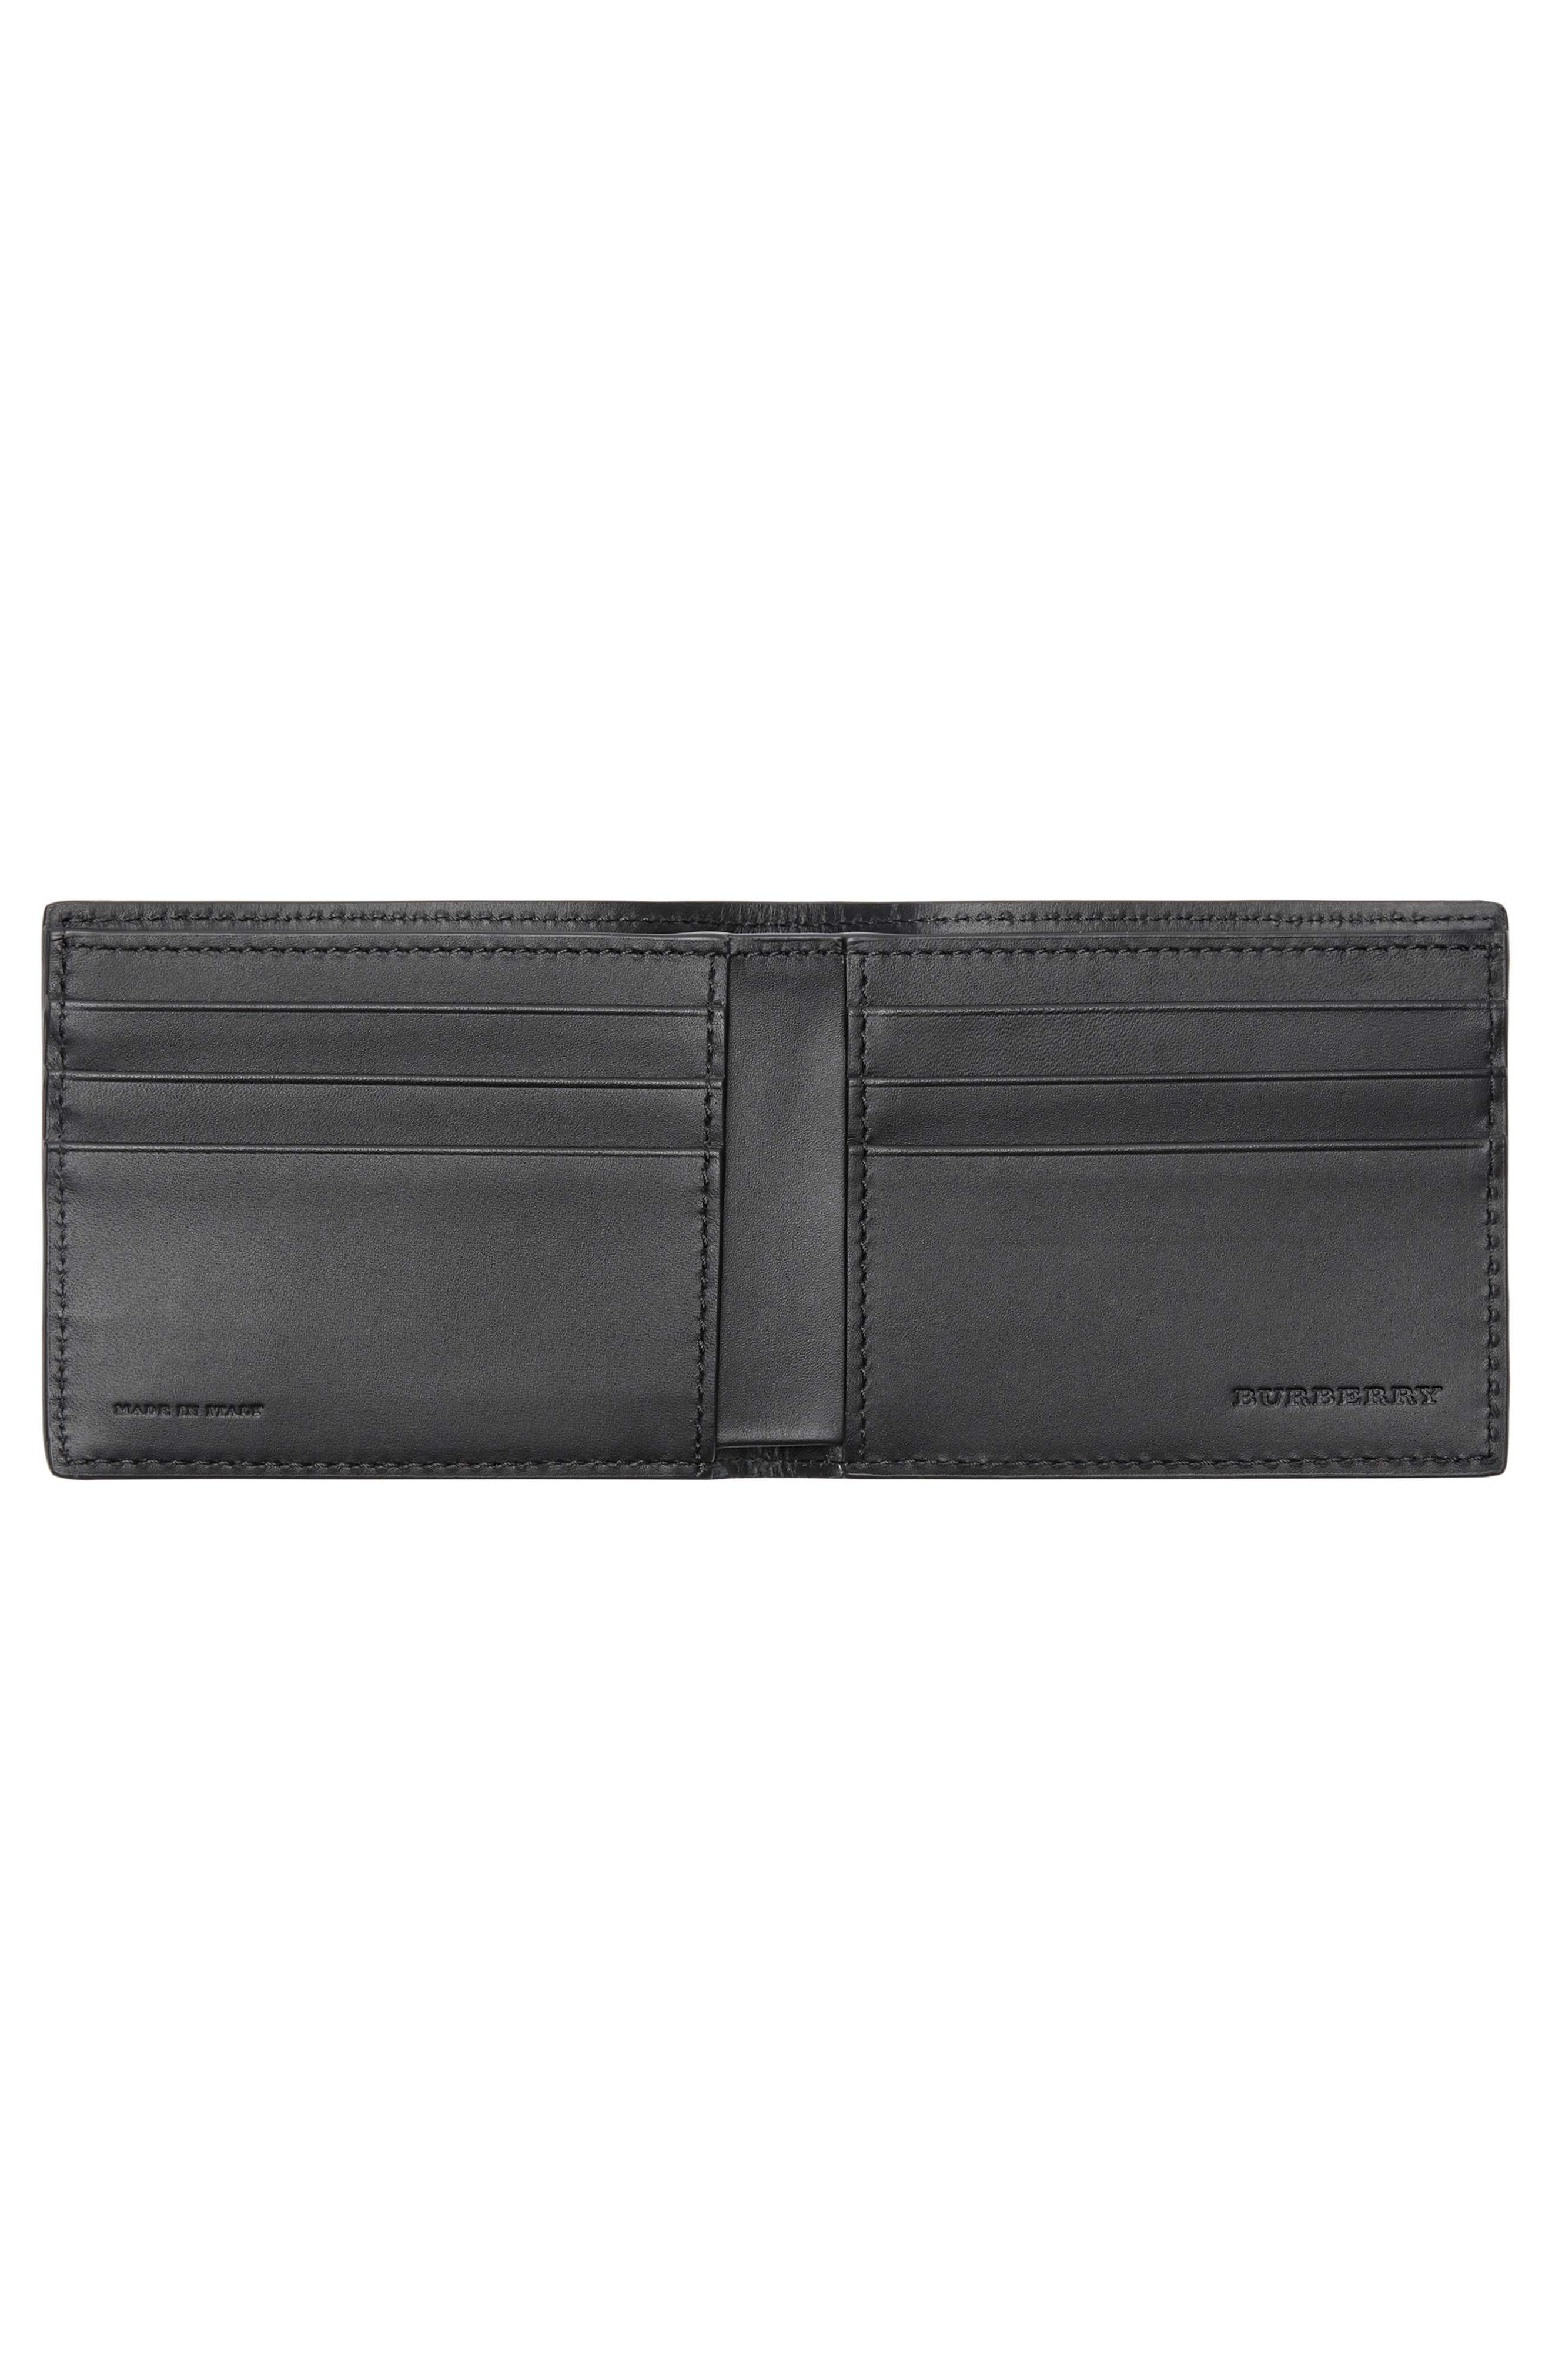 Leather Bifold Wallet,                             Alternate thumbnail 2, color,                             BLACK